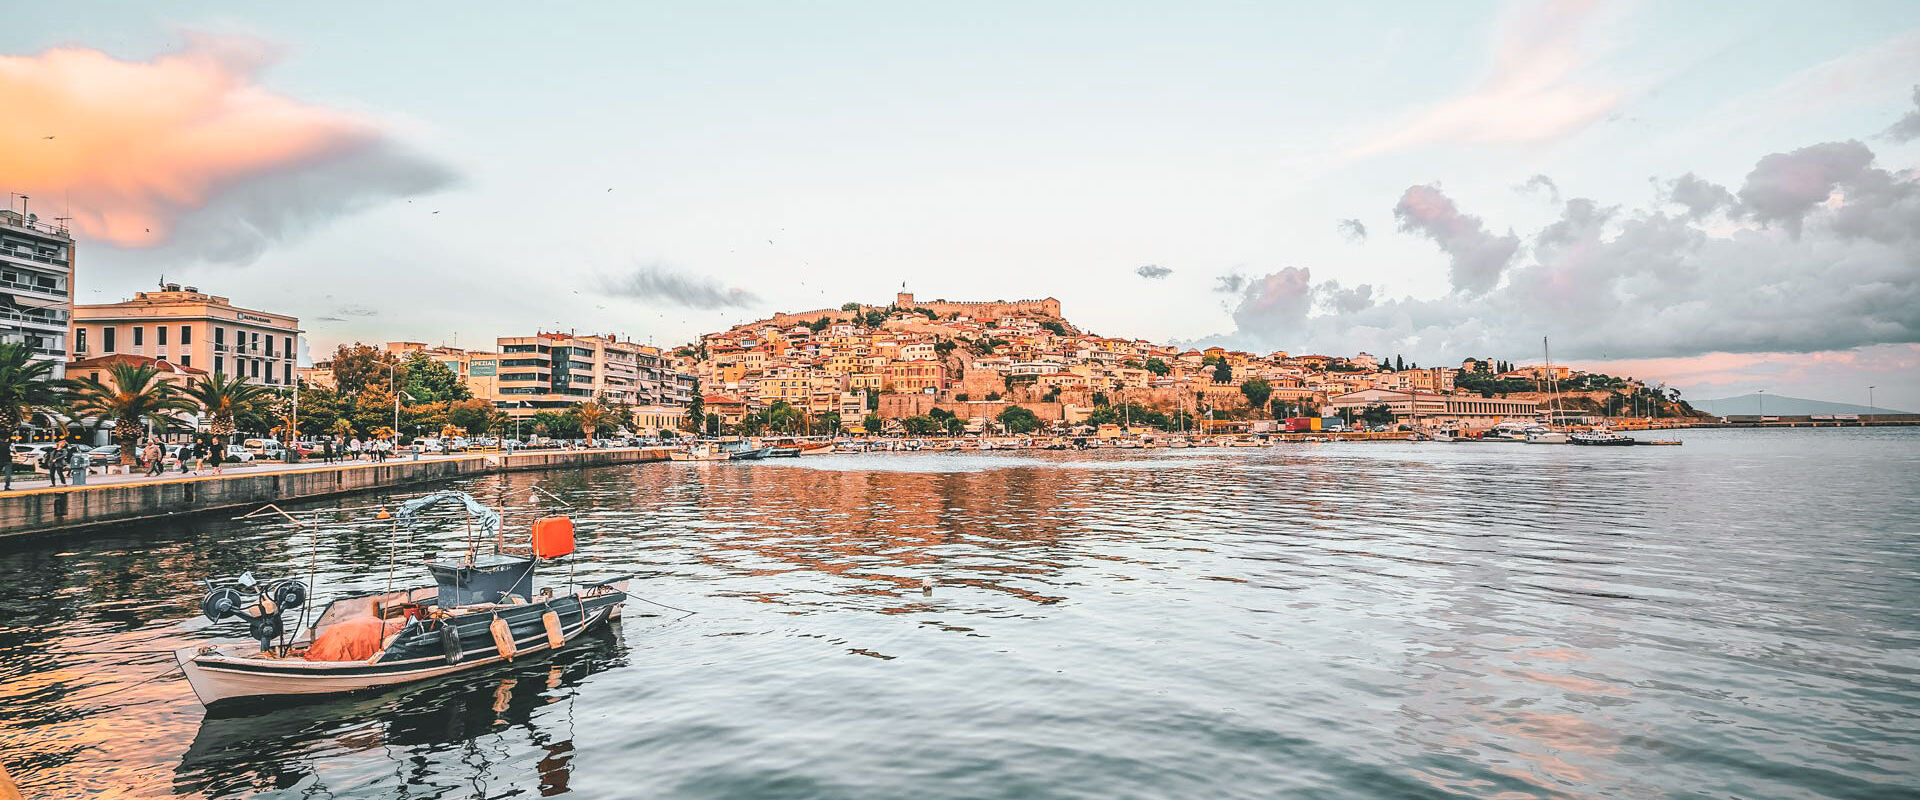 One of the simple pleasures of visiting Kavala is to take a stroll by the sea